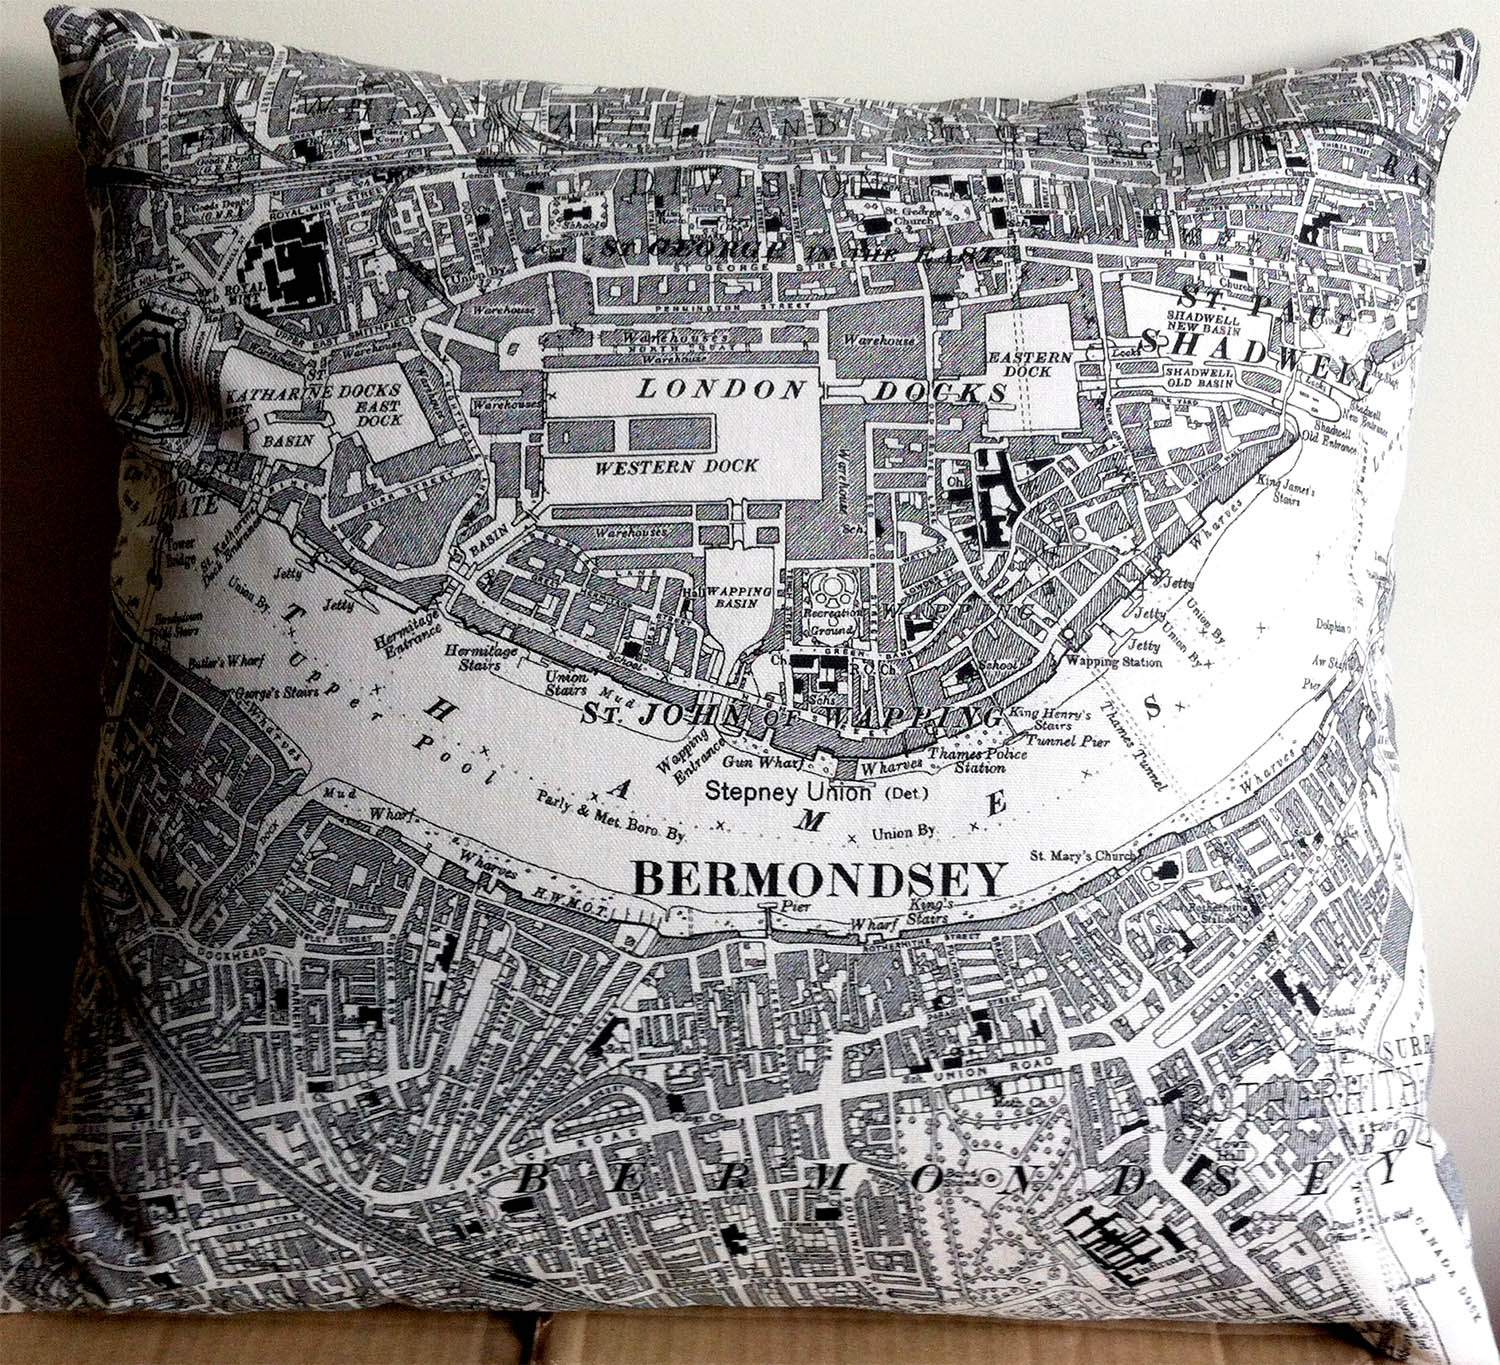 Bermondsey and London Docks.  Using middle of   One of Fiona'  s map tea towels Design No. 50.